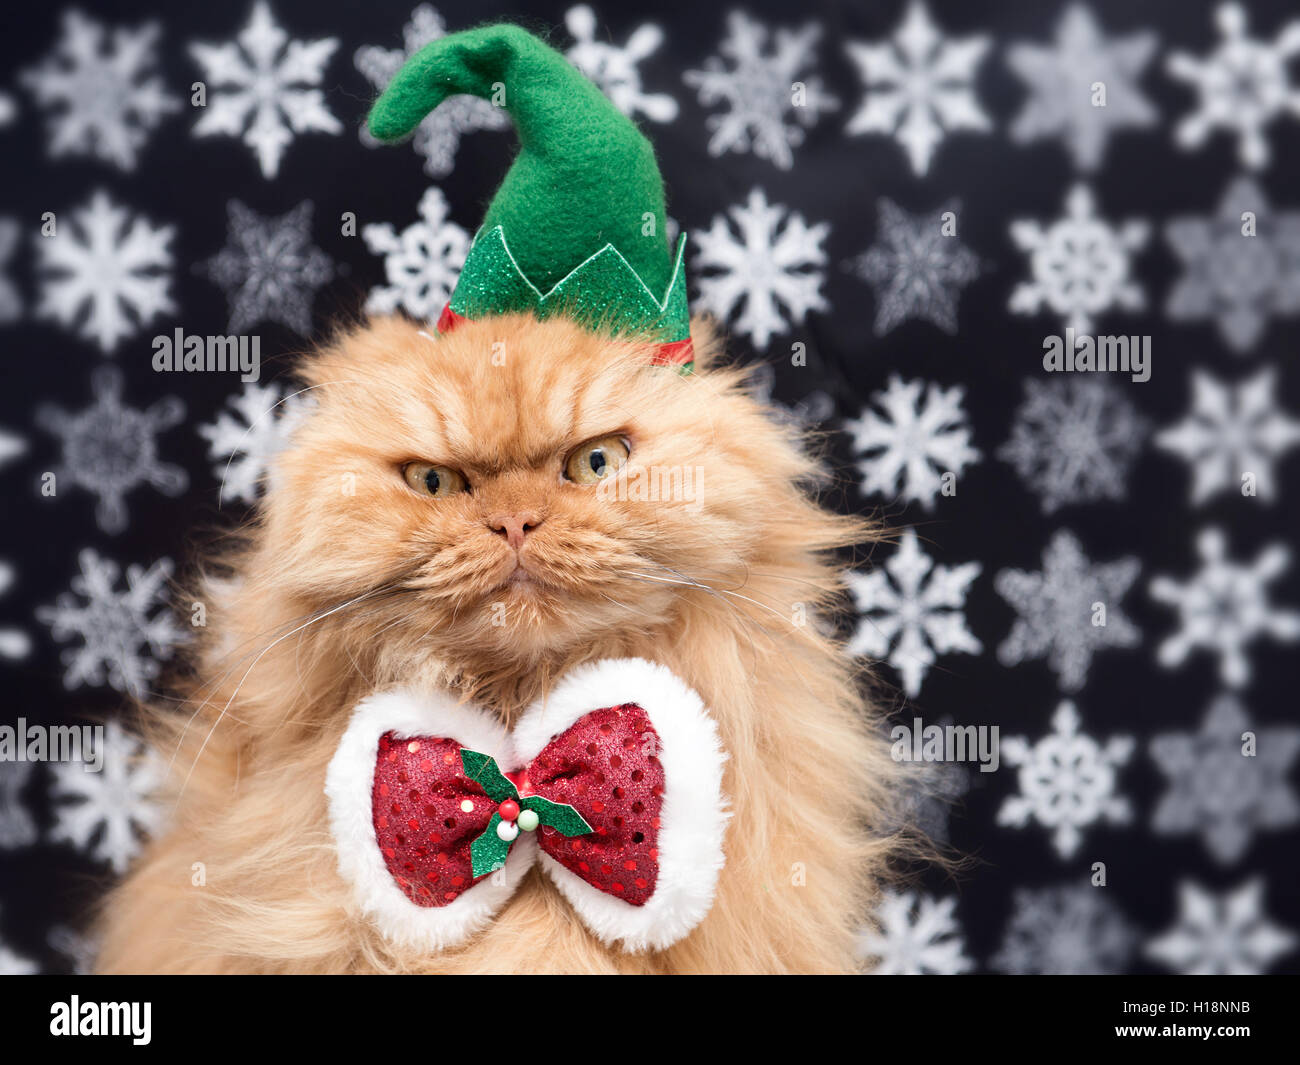 Persian cat wearing holiday elf hat and bow tie - Stock Image